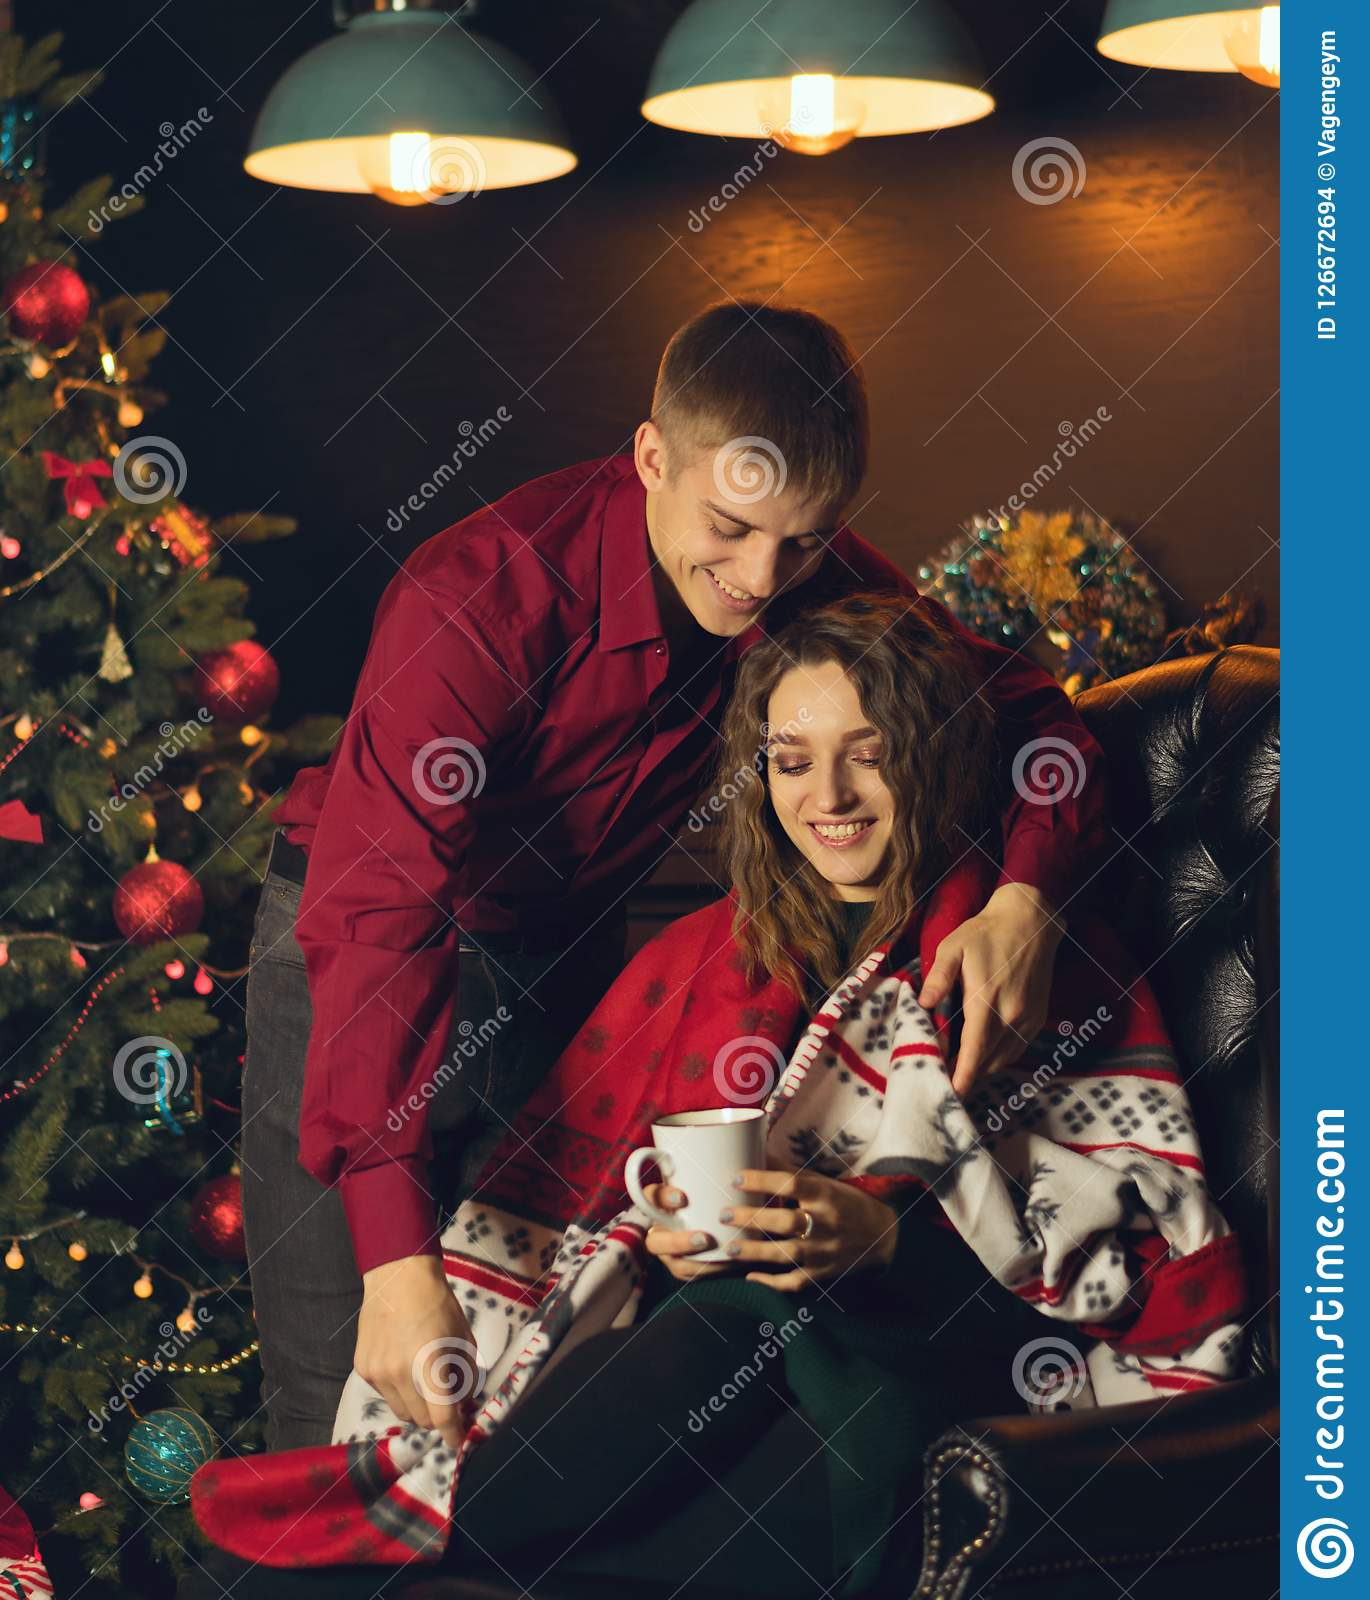 download couple in love celebrating christmas stock photo image of caucasian concept 126672694 - Who Celebrates Christmas